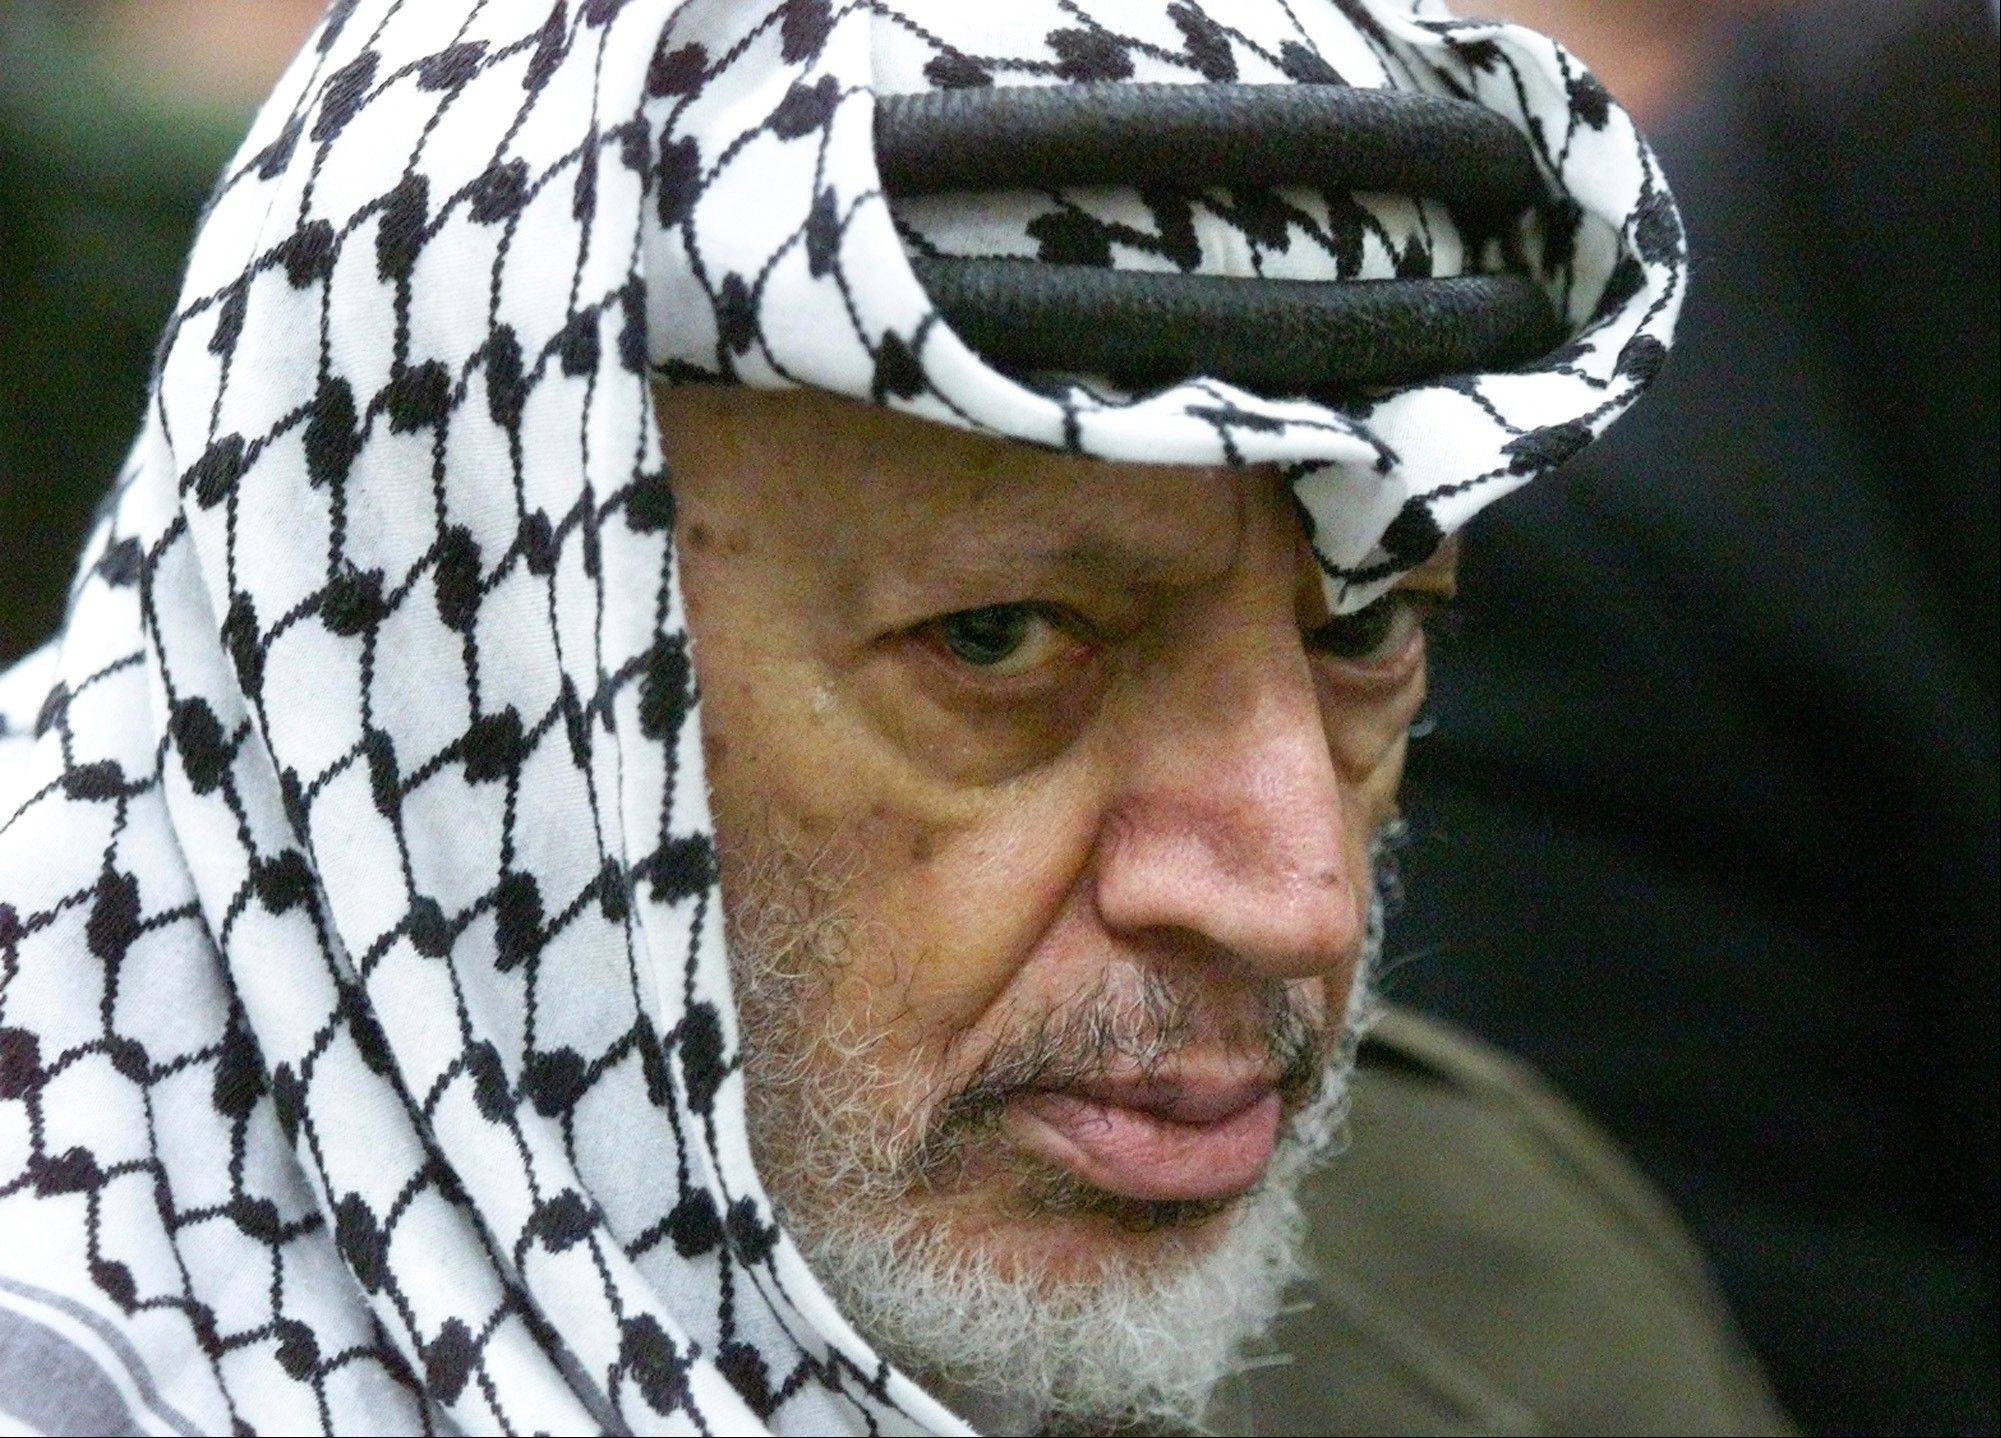 Palestinian leader Yasser Arafat ingested lethal radioactive polonium before his death nine years ago, and it could not have been by accident, Swiss scientists said Thursday.